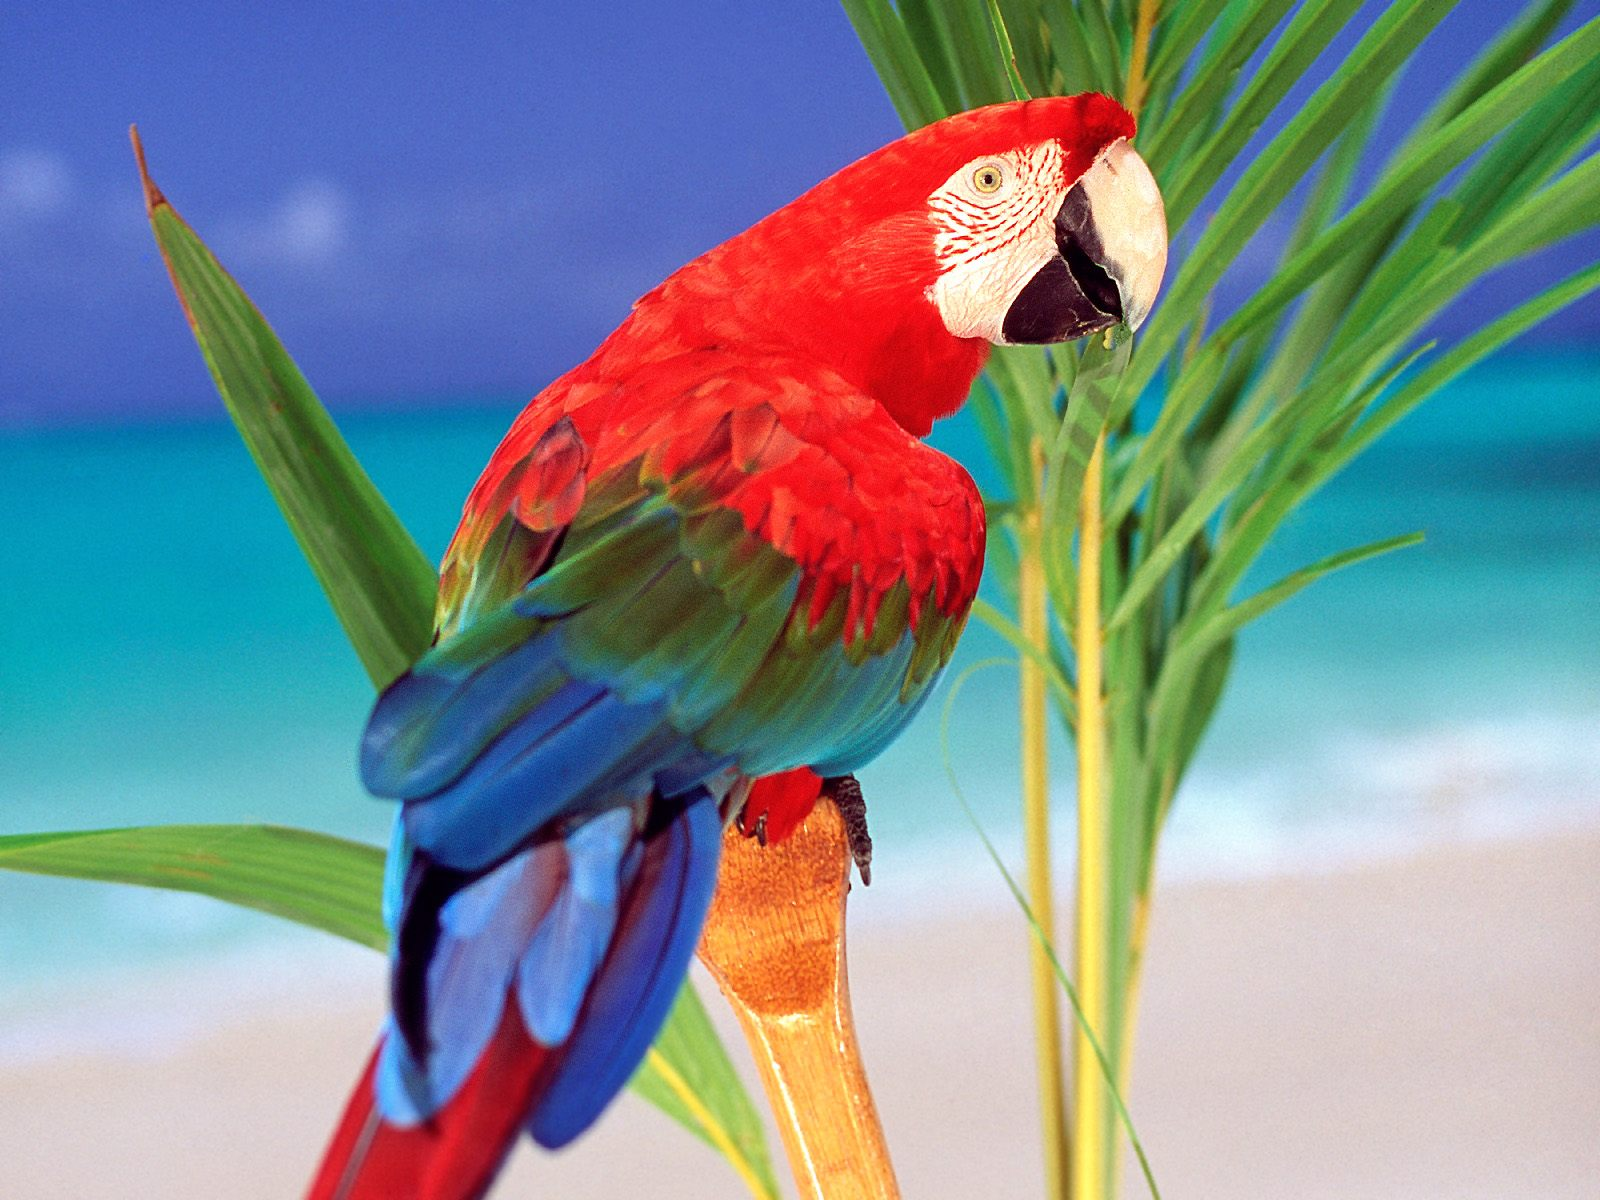 Parrot Picture - Wide 1600 X 1200